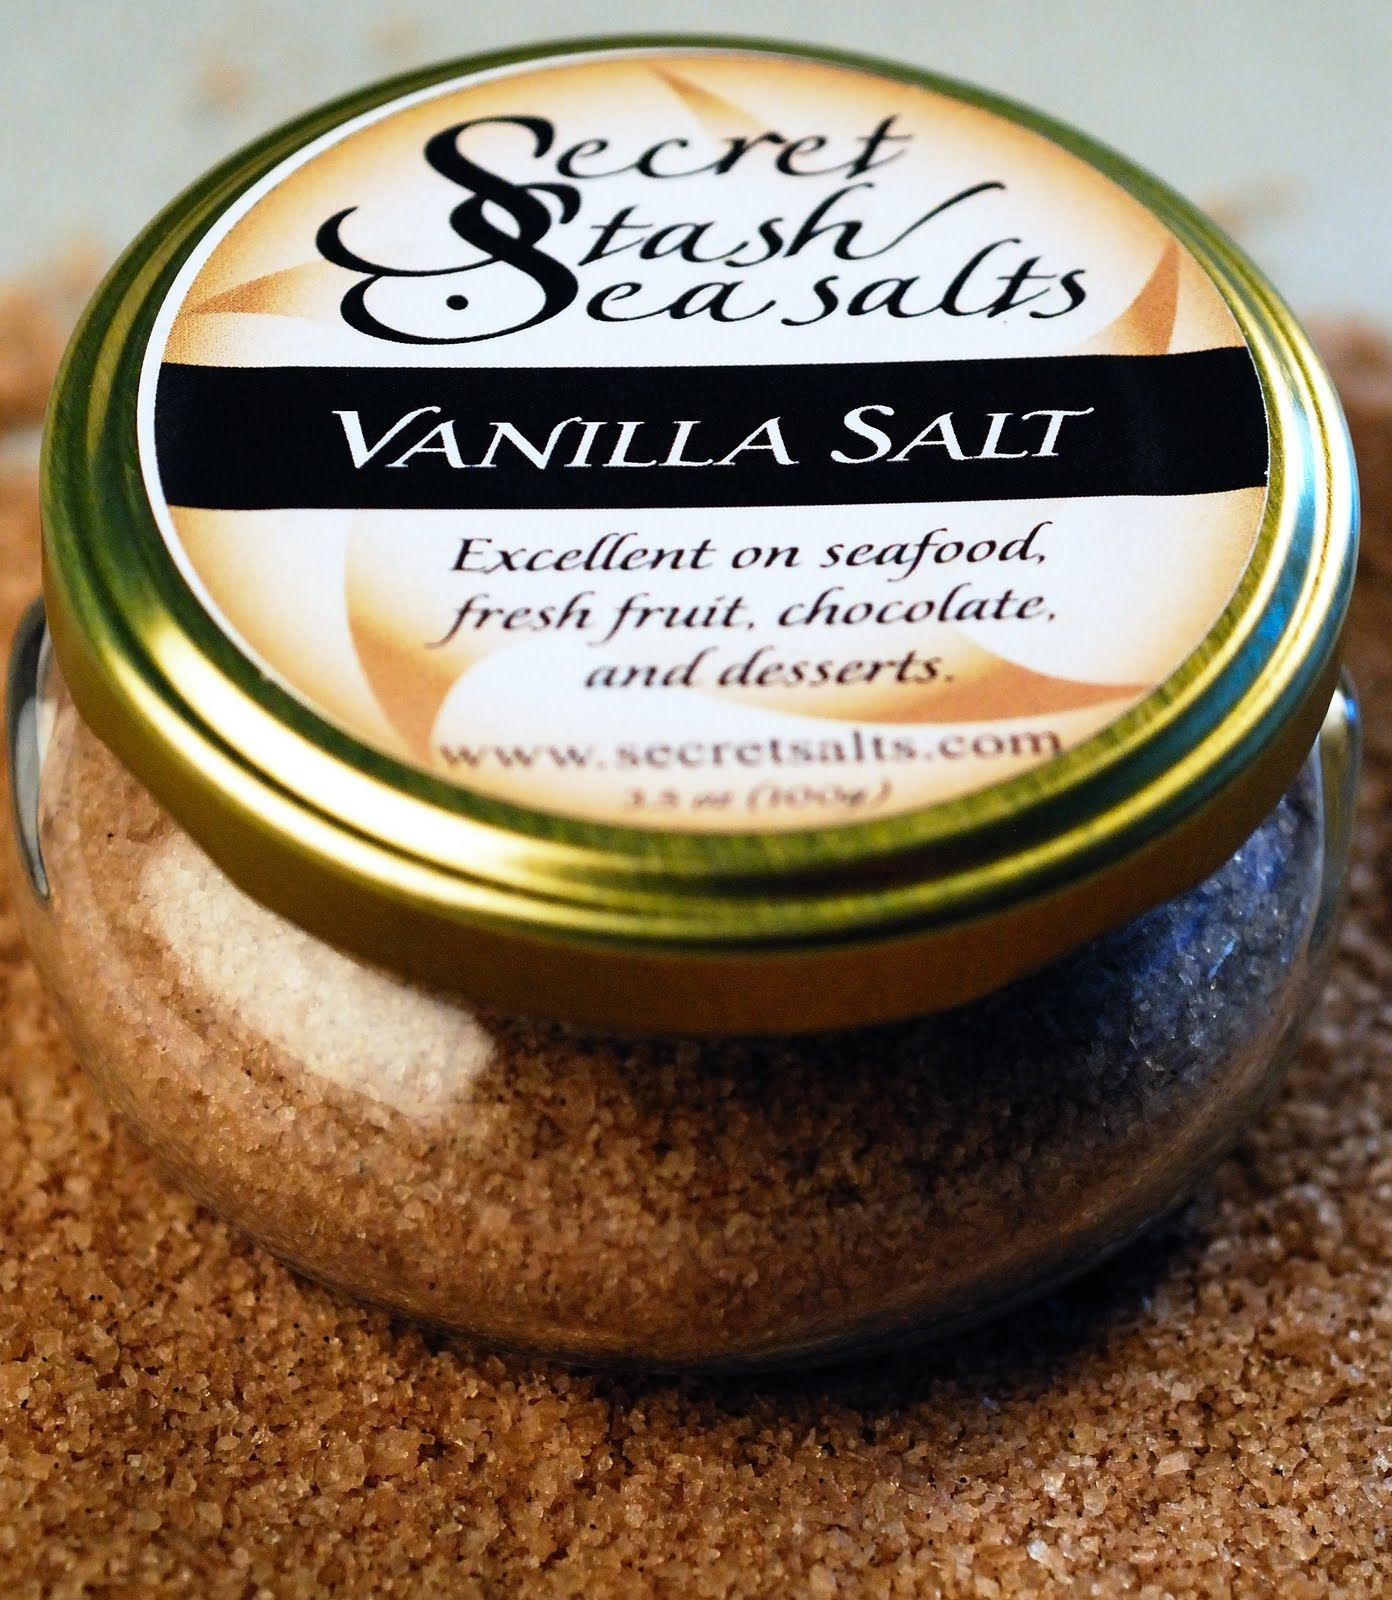 Secret Stash Sea Salts: vanilla salt